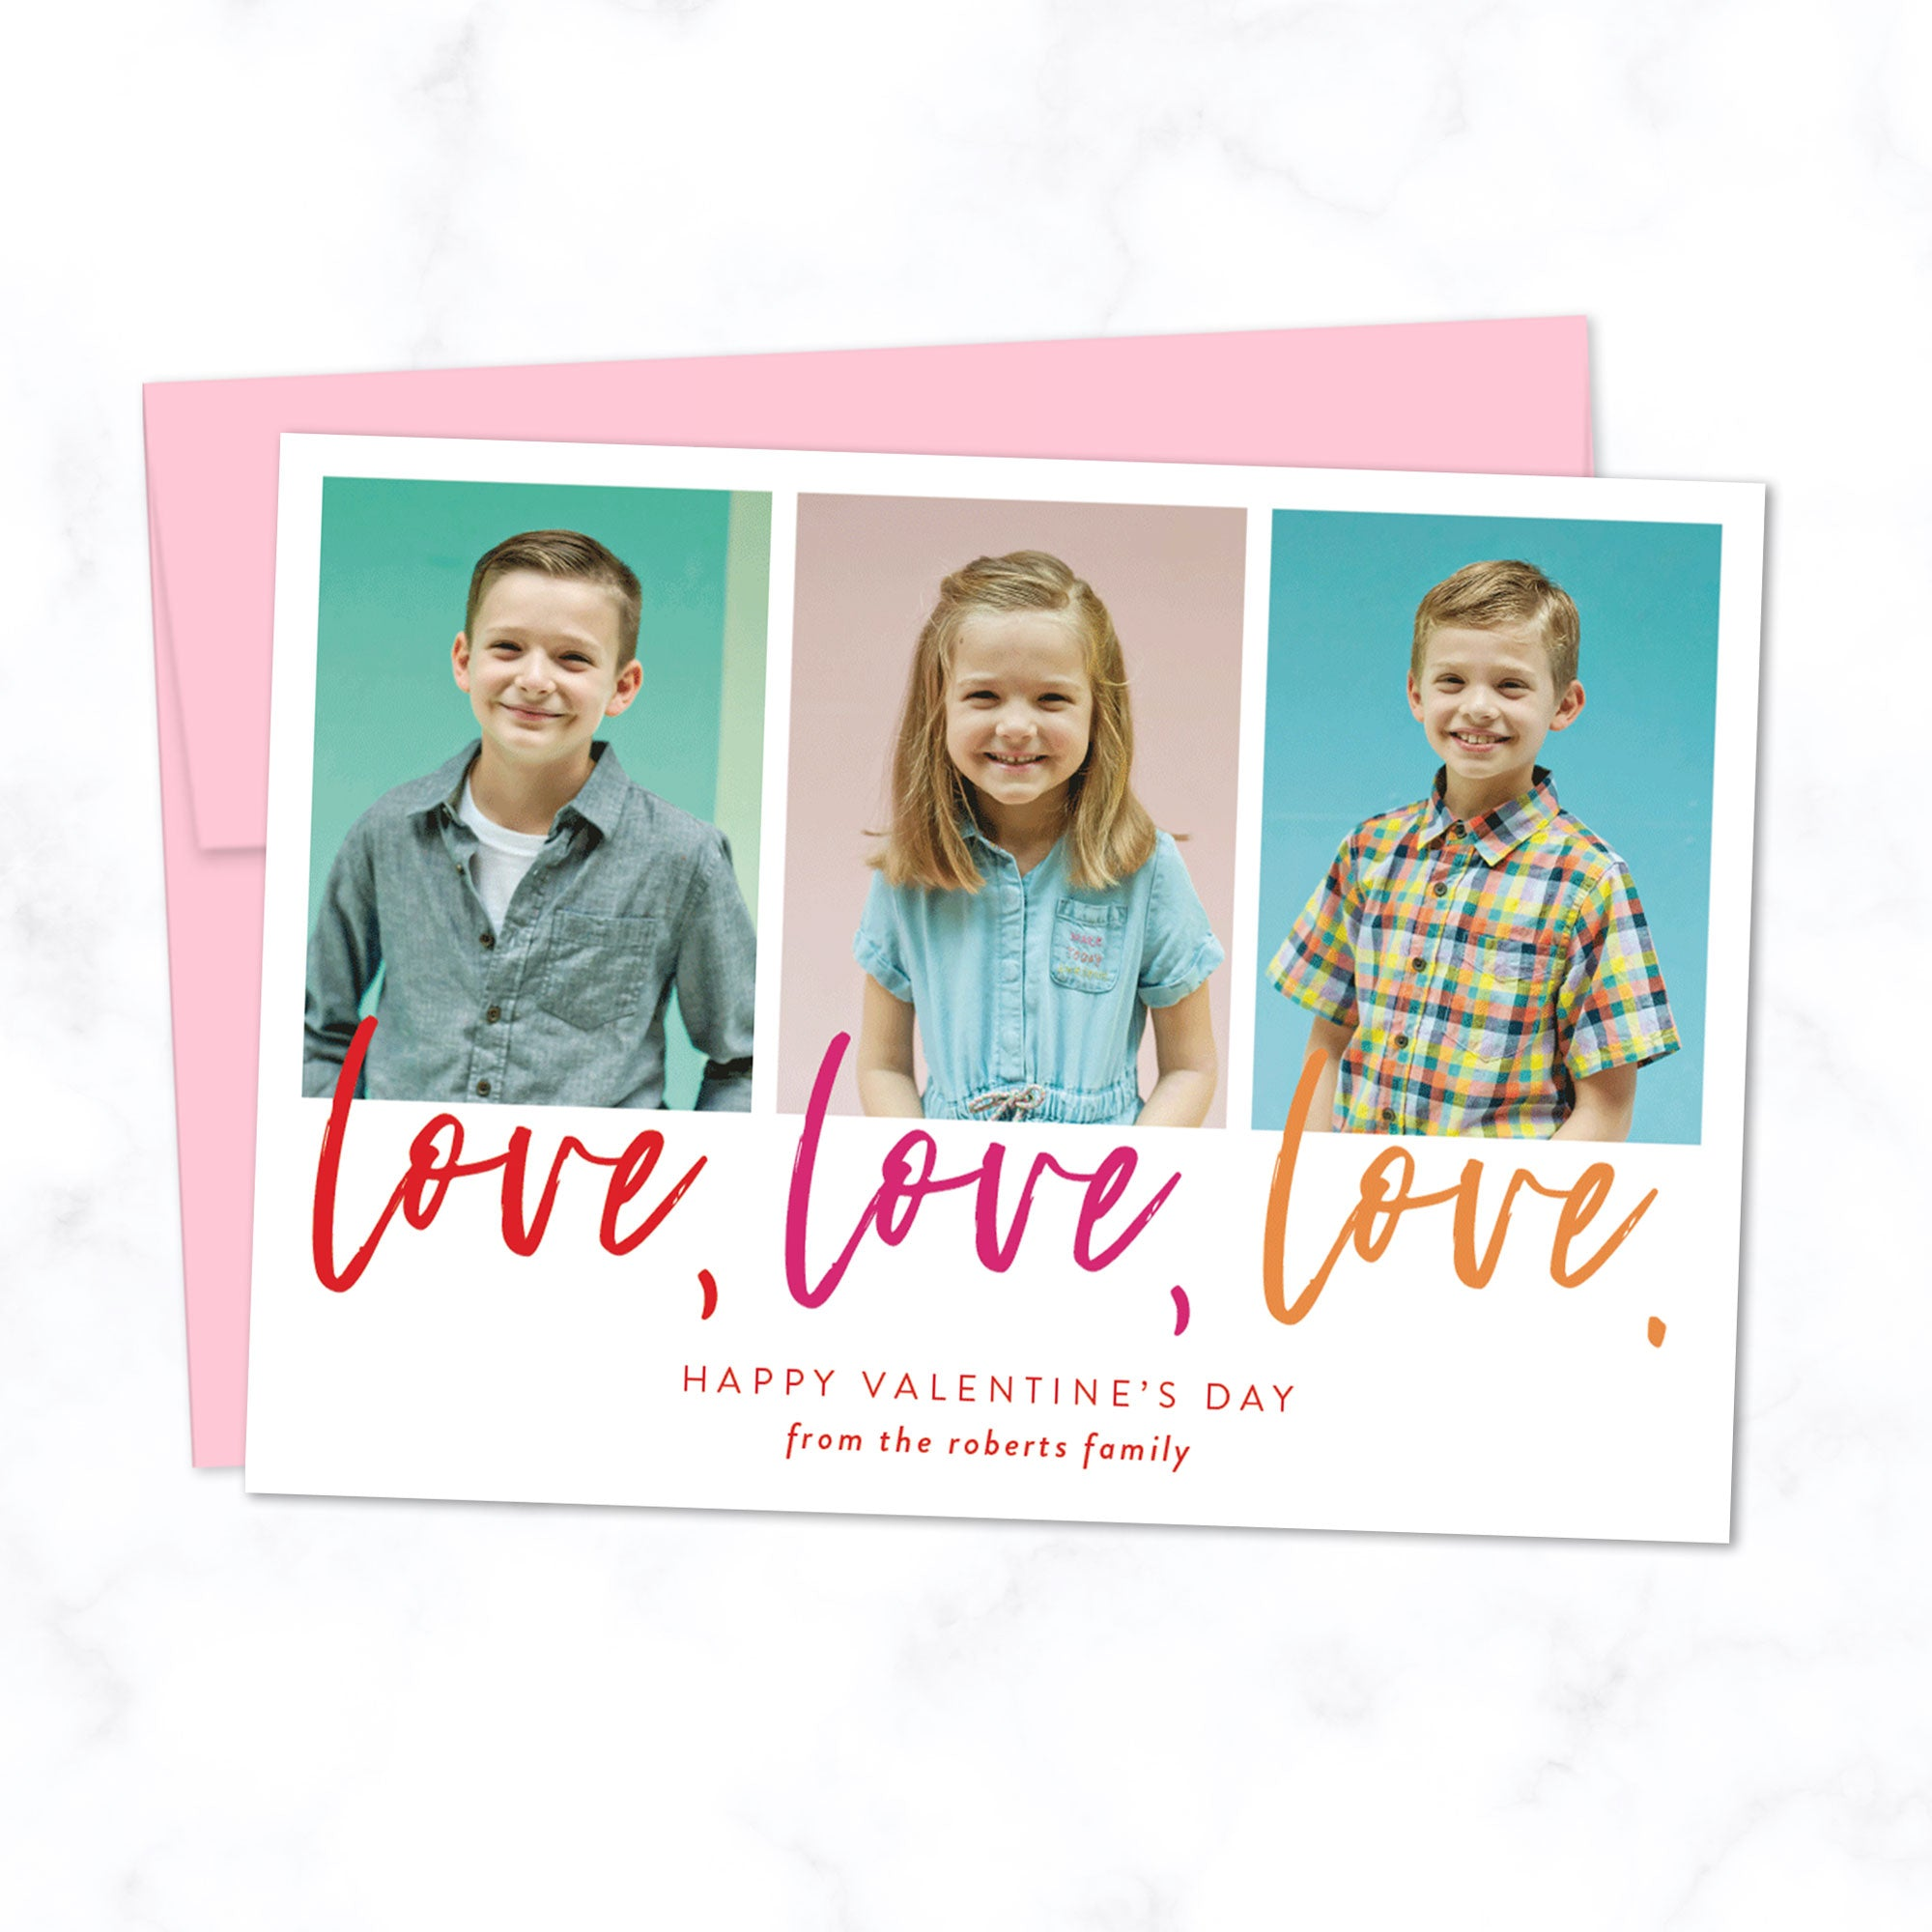 Custom Valentine's Day Photo Card with 3 Photo Frames and Love Love Love typography in colorful script. Printed A7 cards with light pink envelopes.